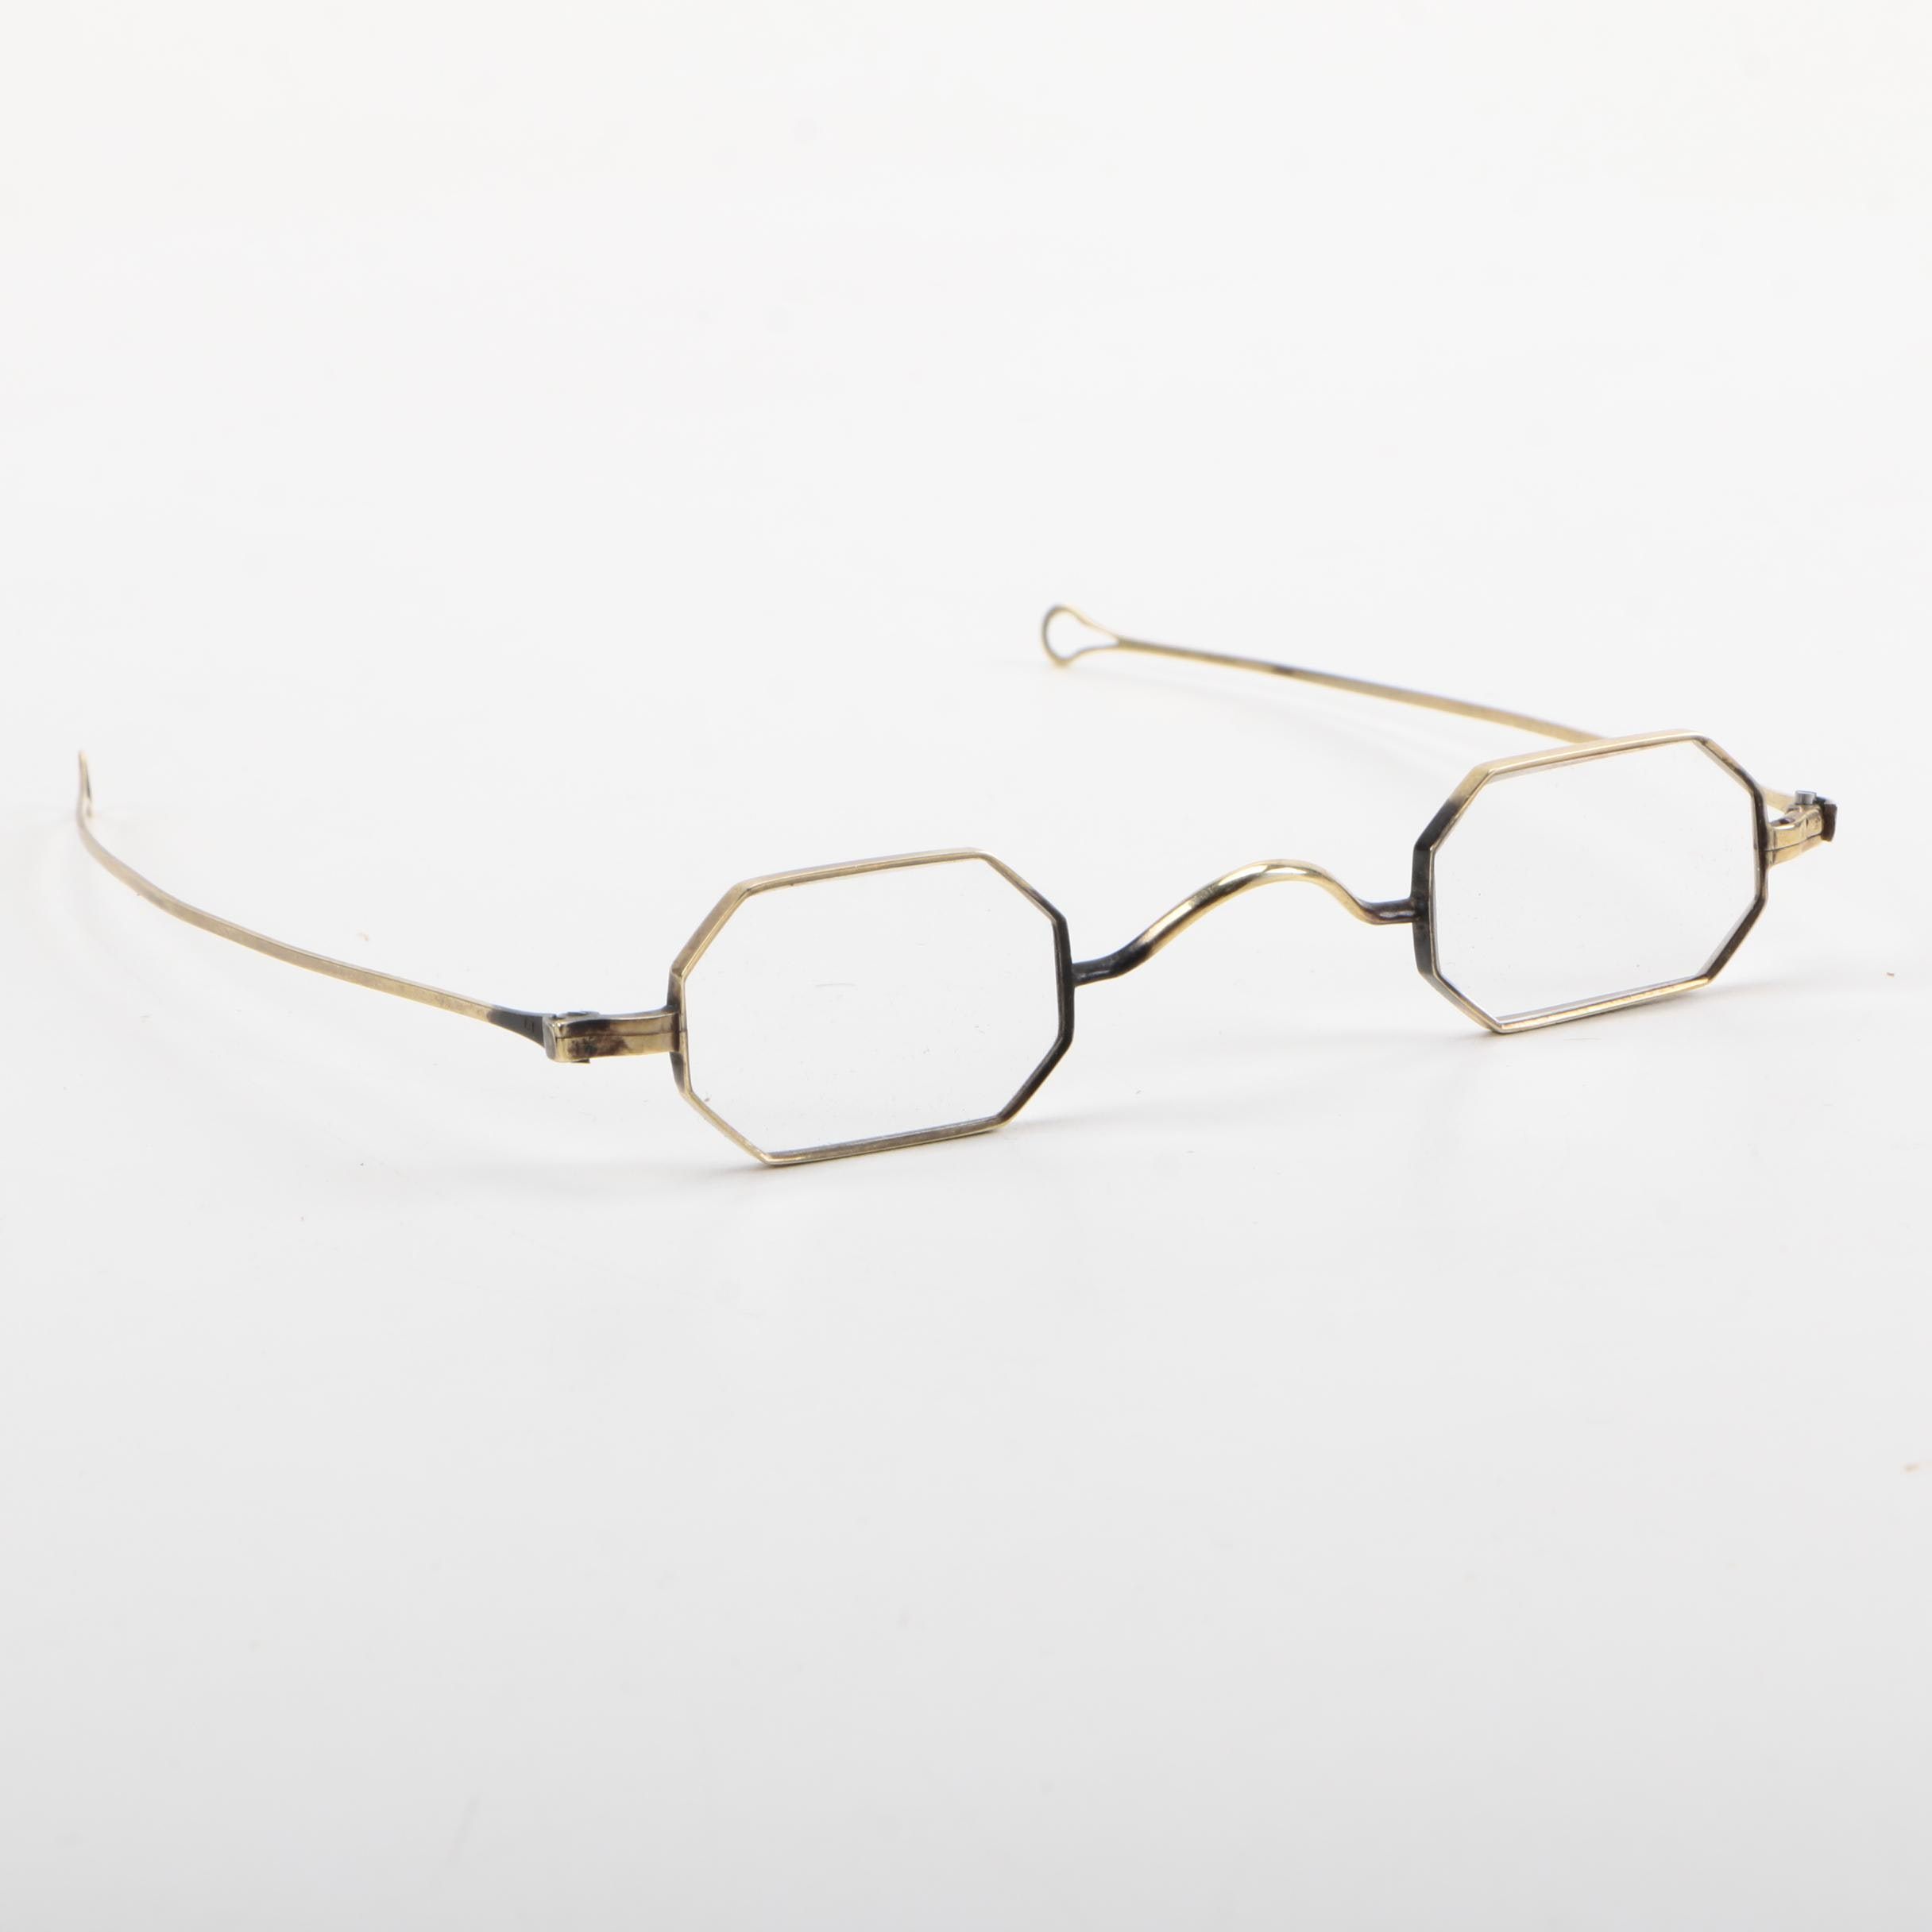 Mid 19th Century Brass Framed Octagonal Reading Glasses with Leather Case